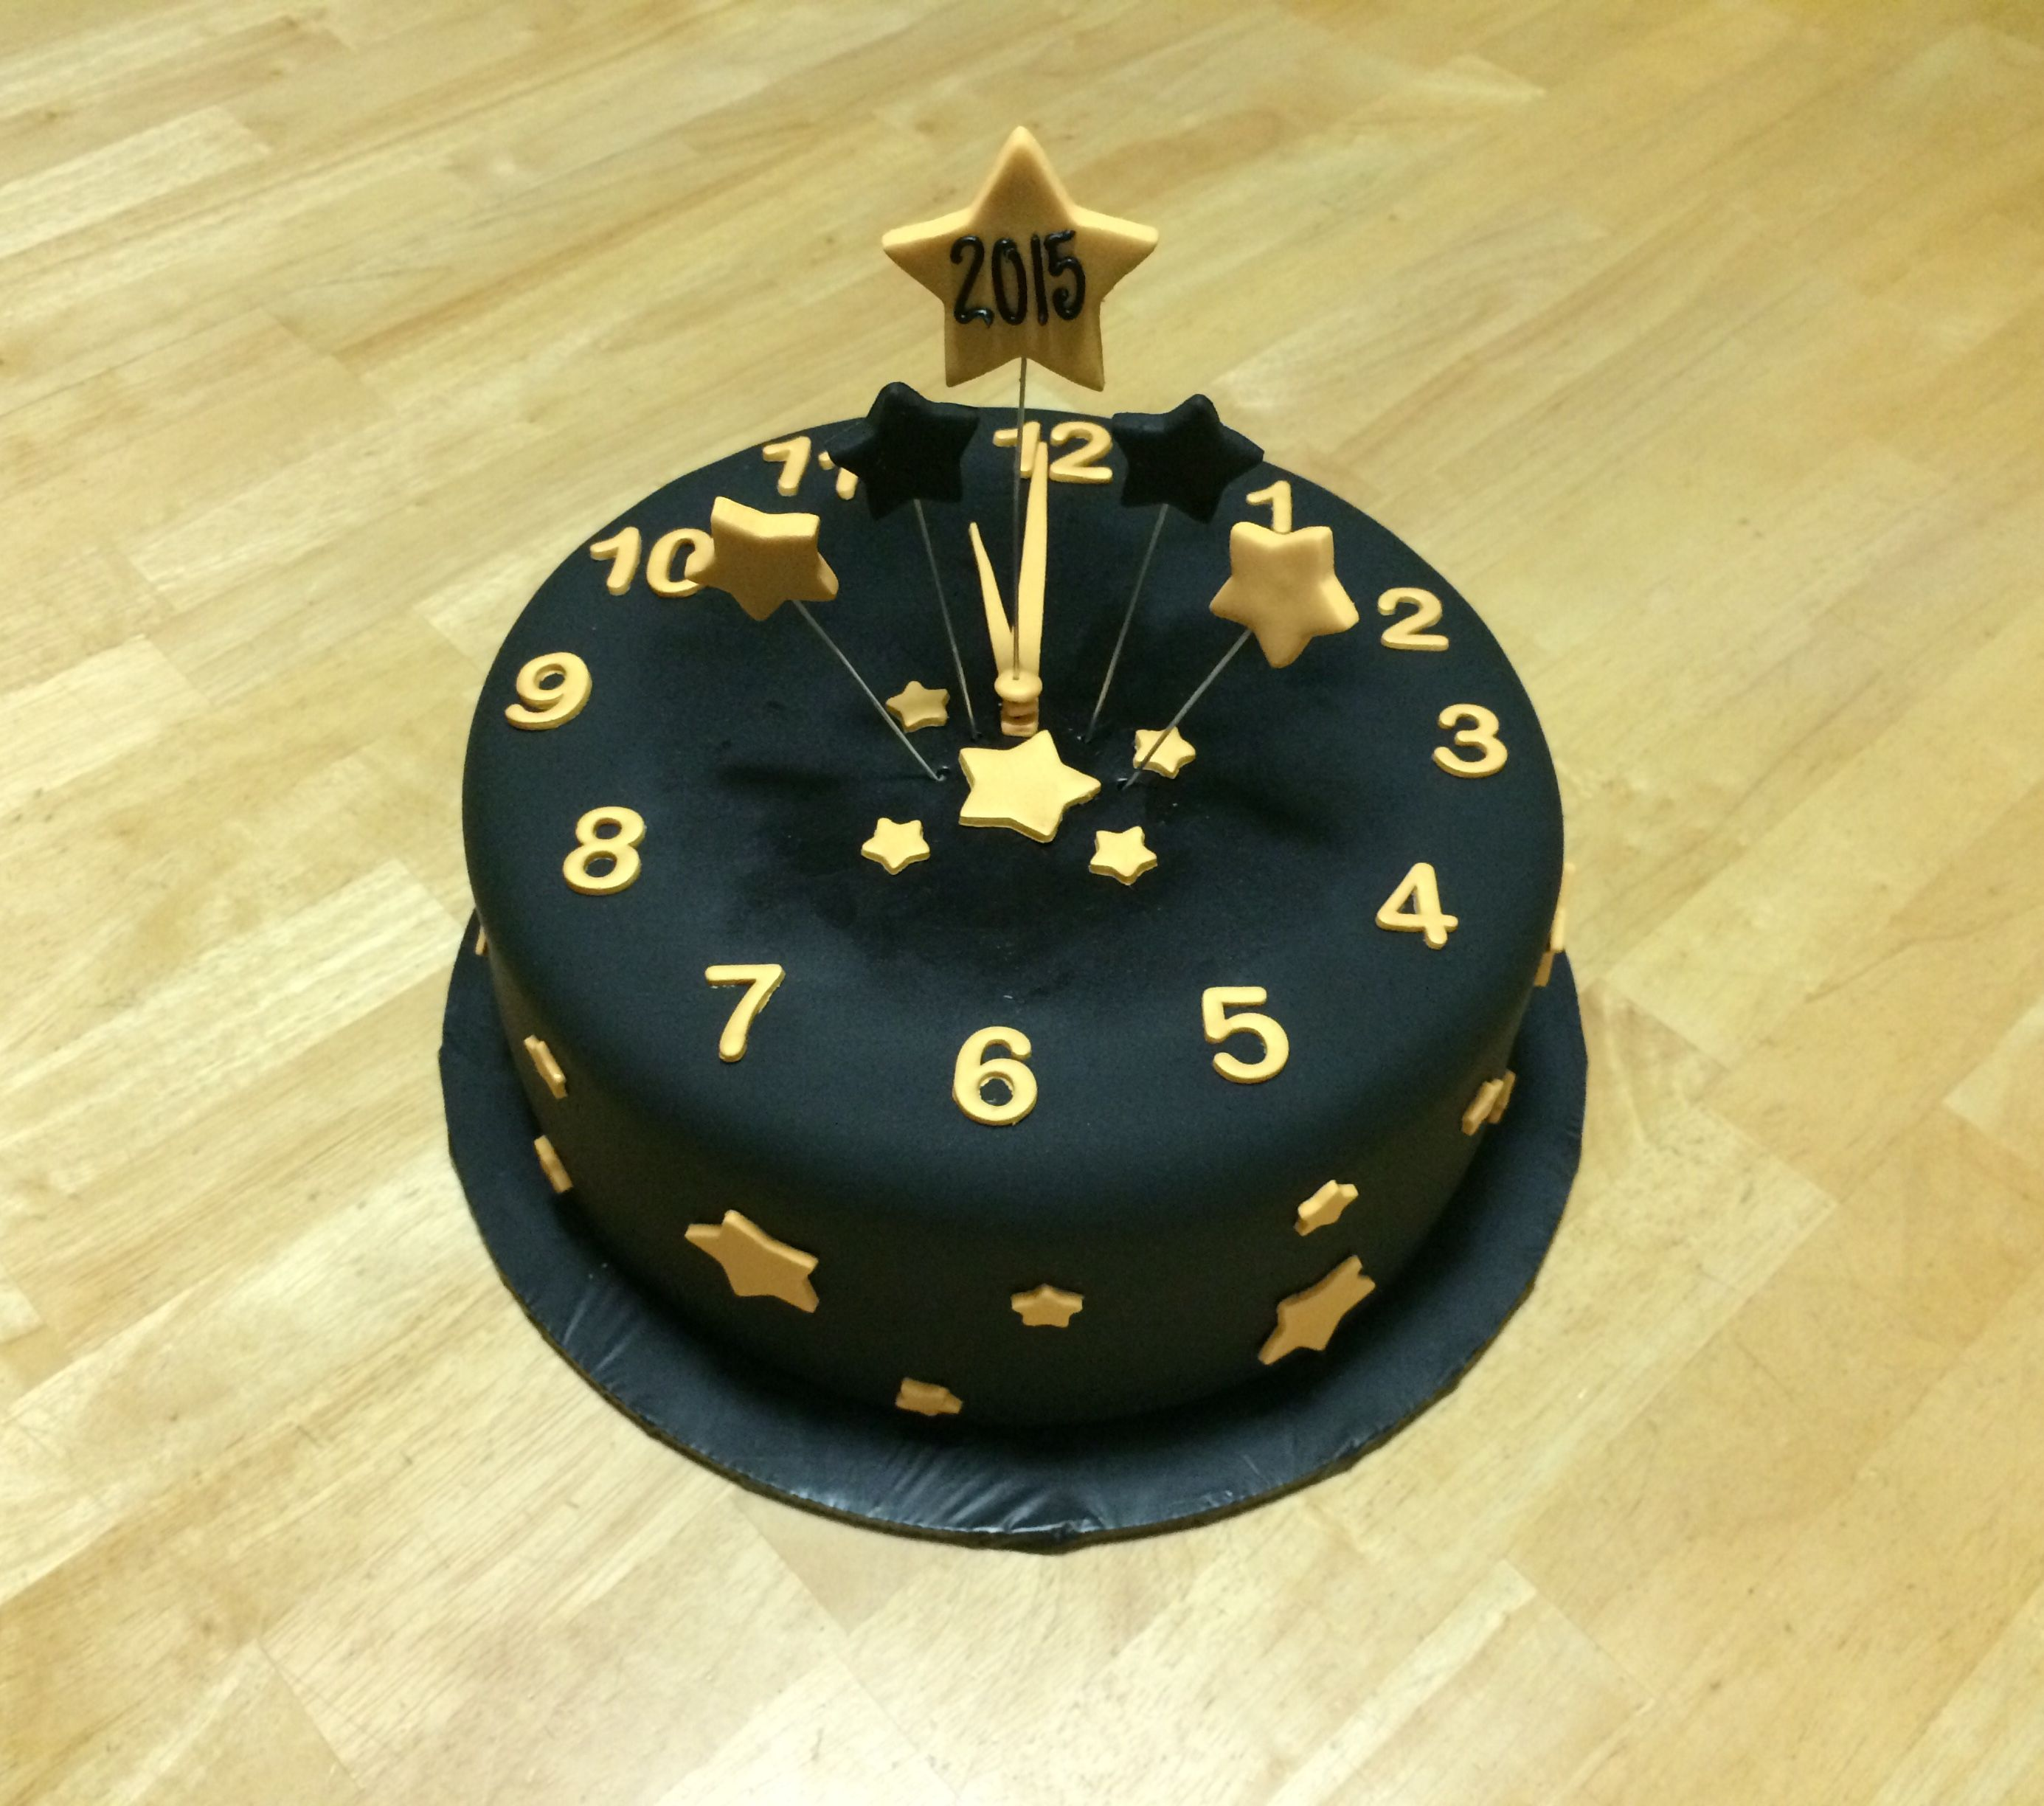 New Year S Eve Cake With Images New Year S Cake Holiday Cakes